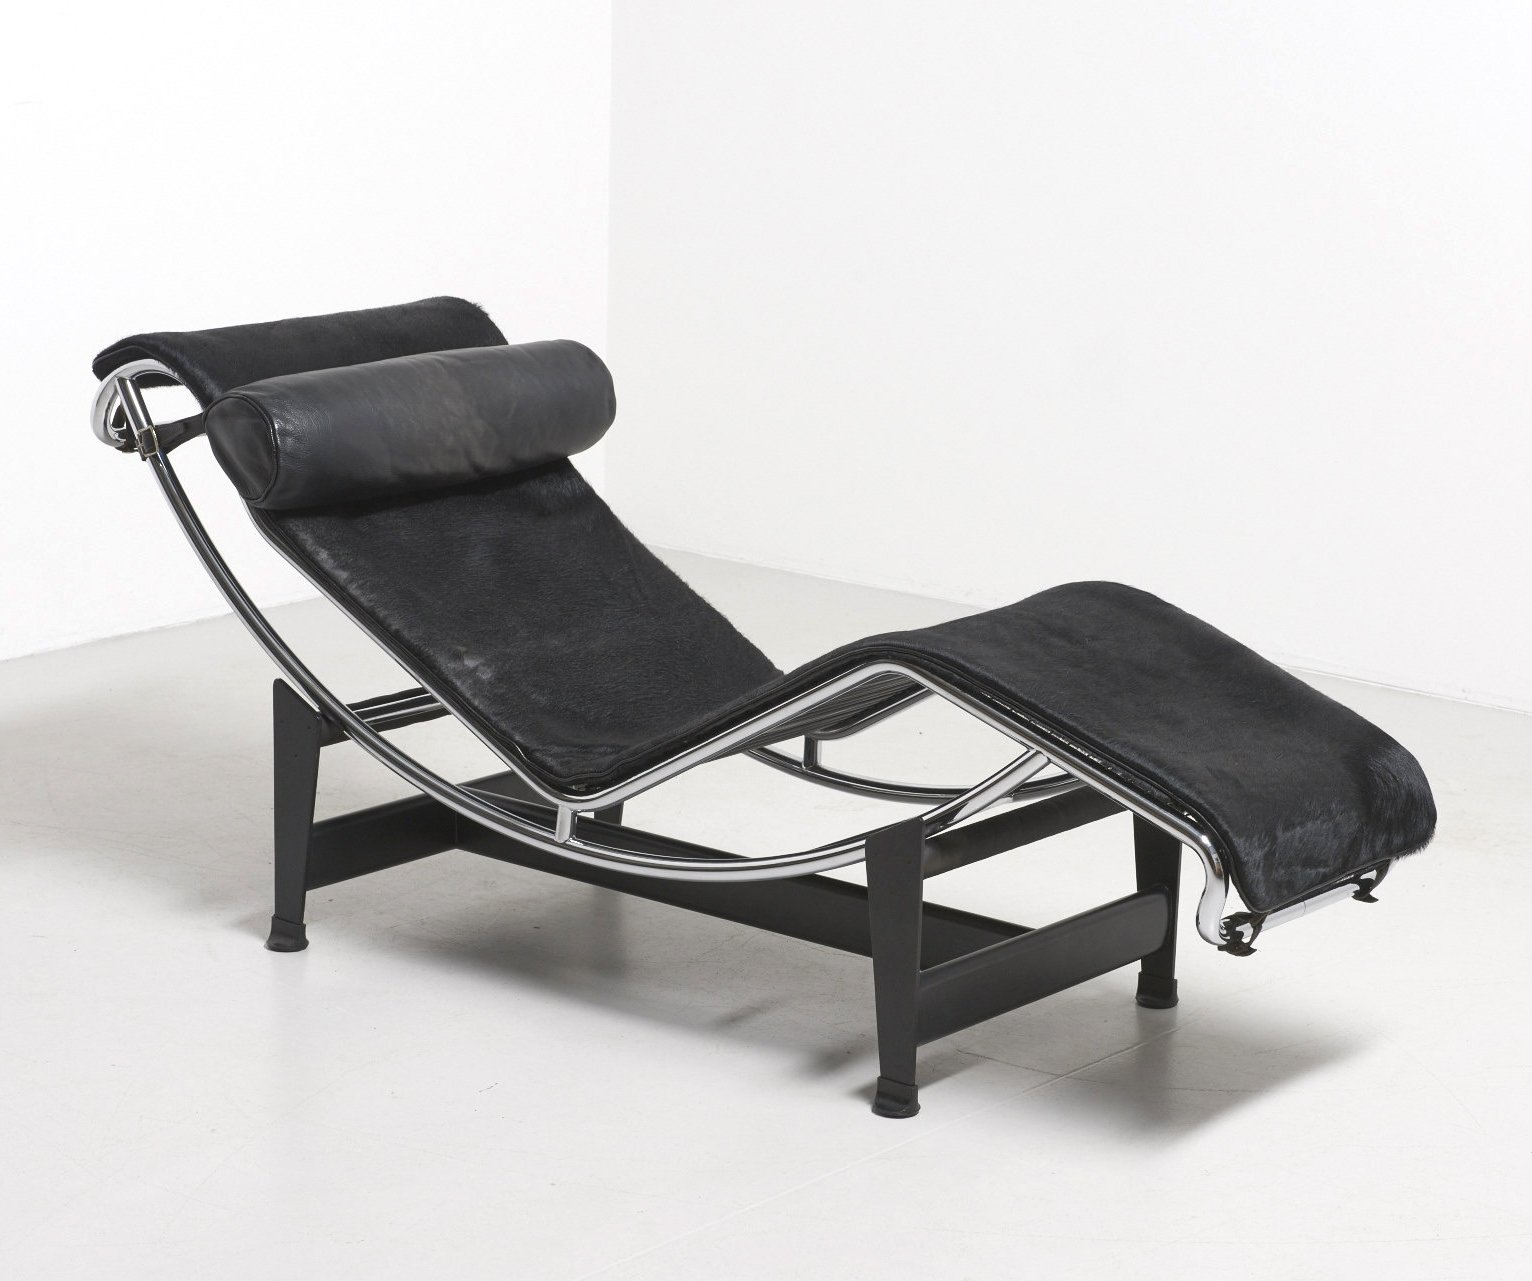 LC4 Lounge Chair By Le Corbusier U0026 Charlotte Perriand For Cassina, 1960s